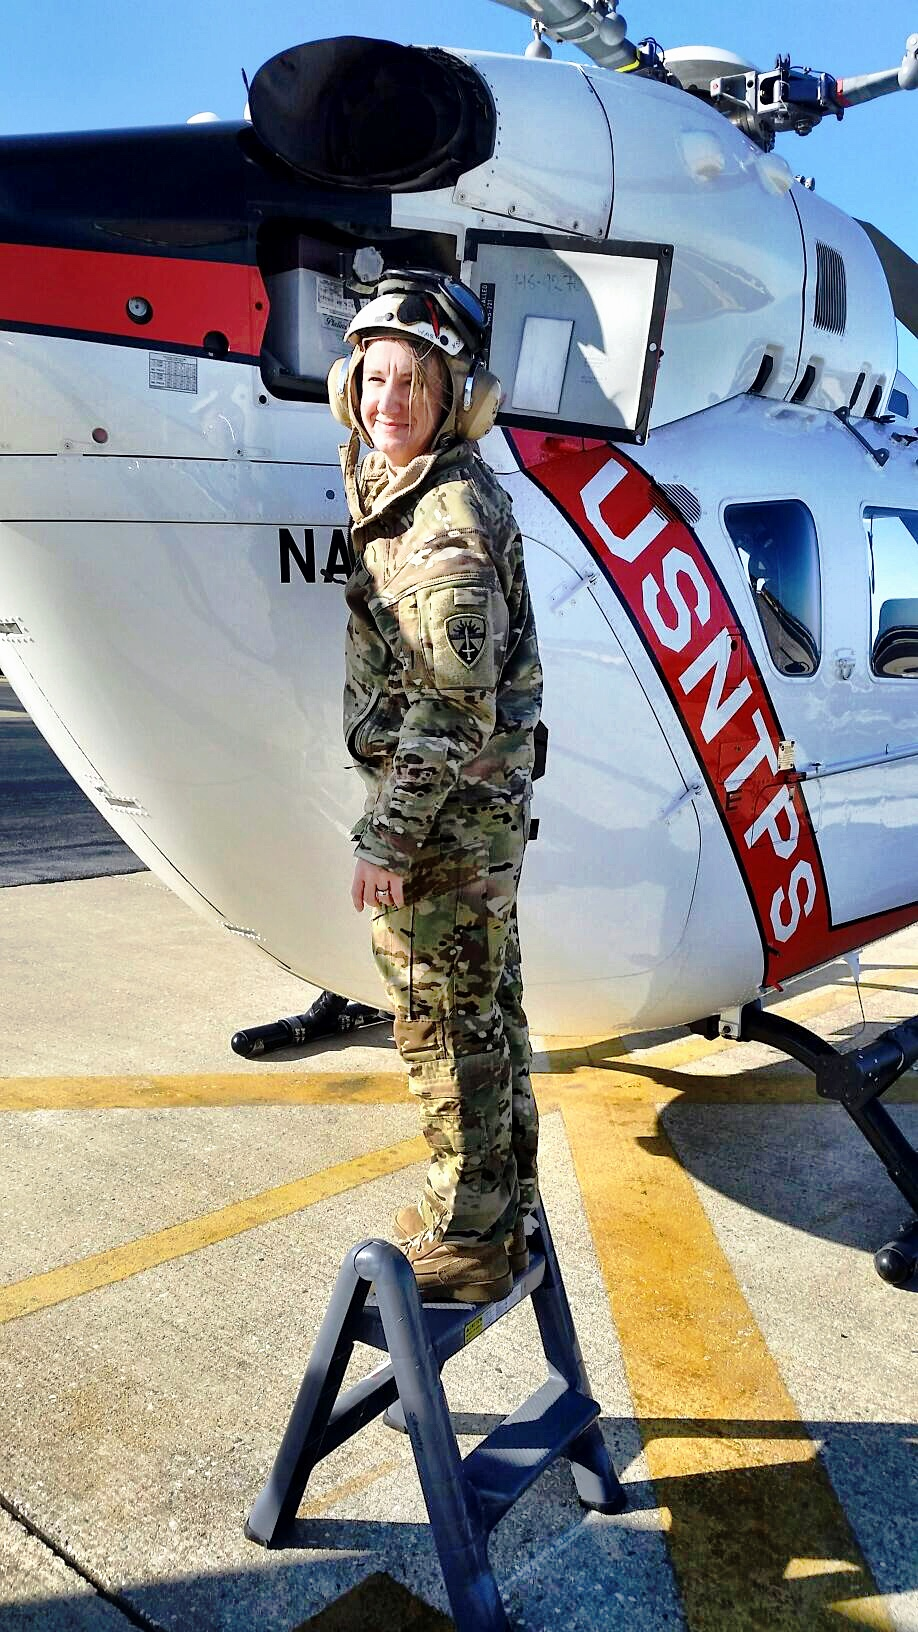 Here Sylvia Grandstaff, CW3 (USA), poses next to a USN Test Pilot School helicopter prior to a syllabus test flight.